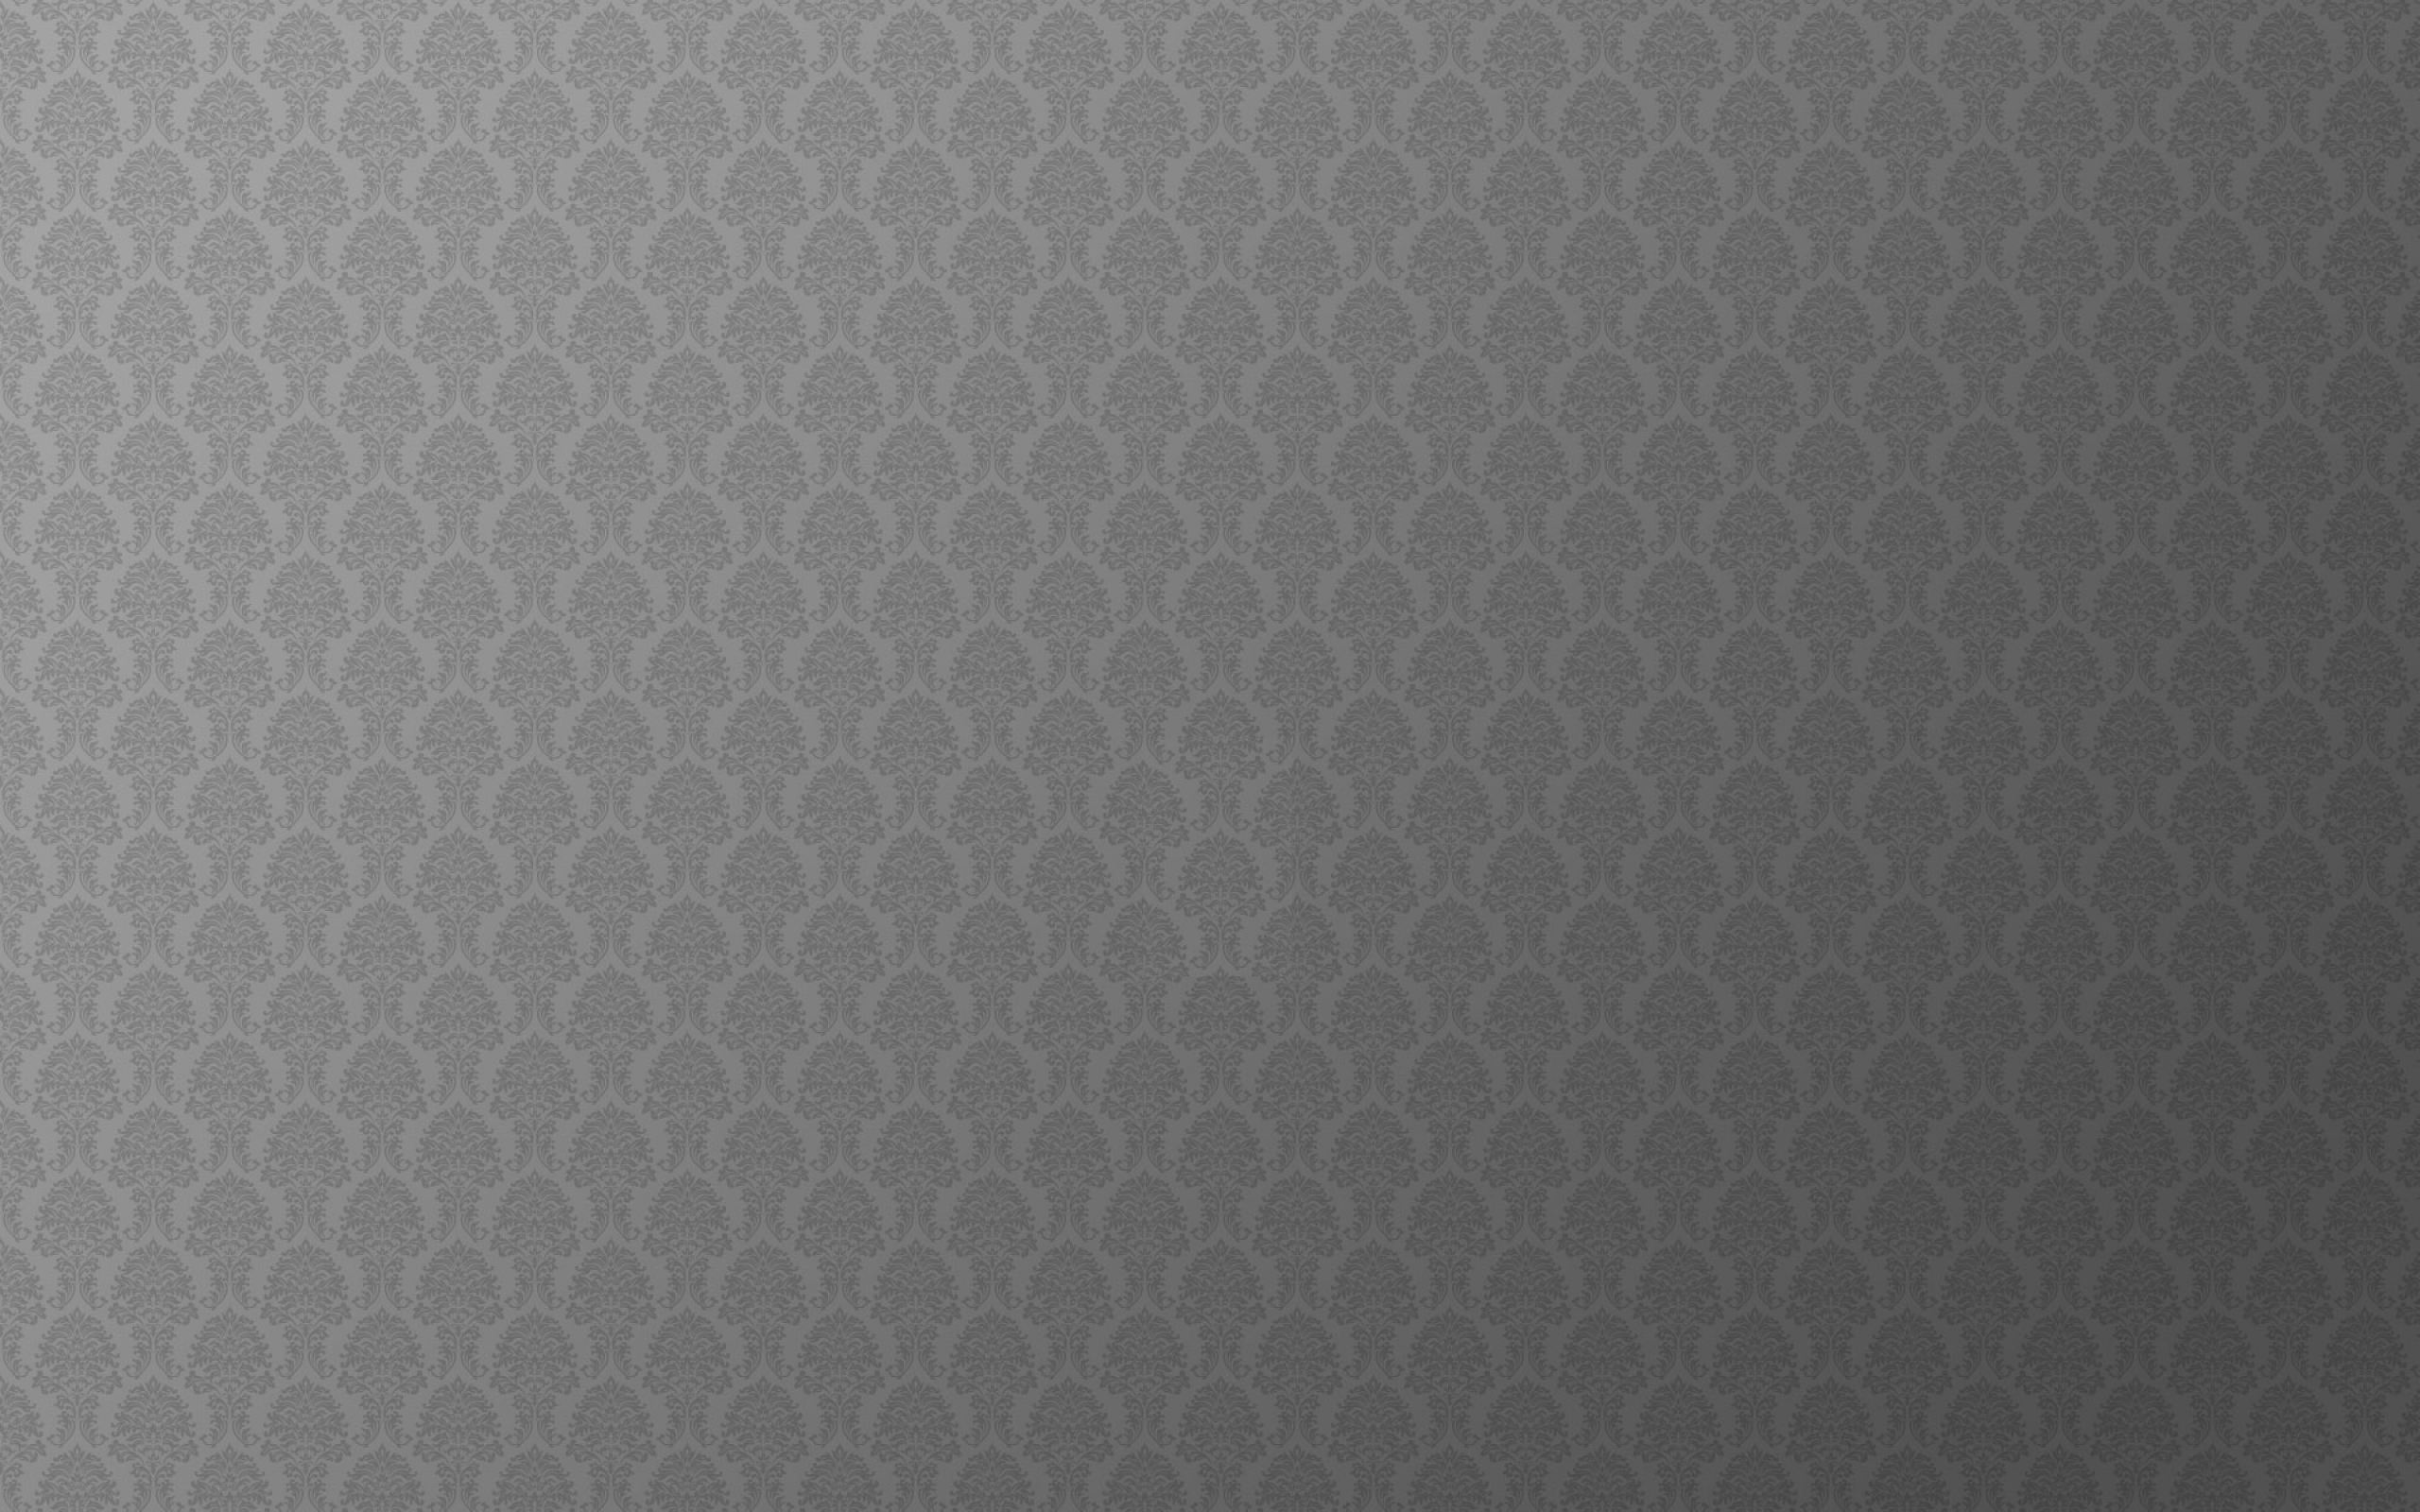 12 Grey HD Wallpapers | Backgrounds - Wallpaper Abyss